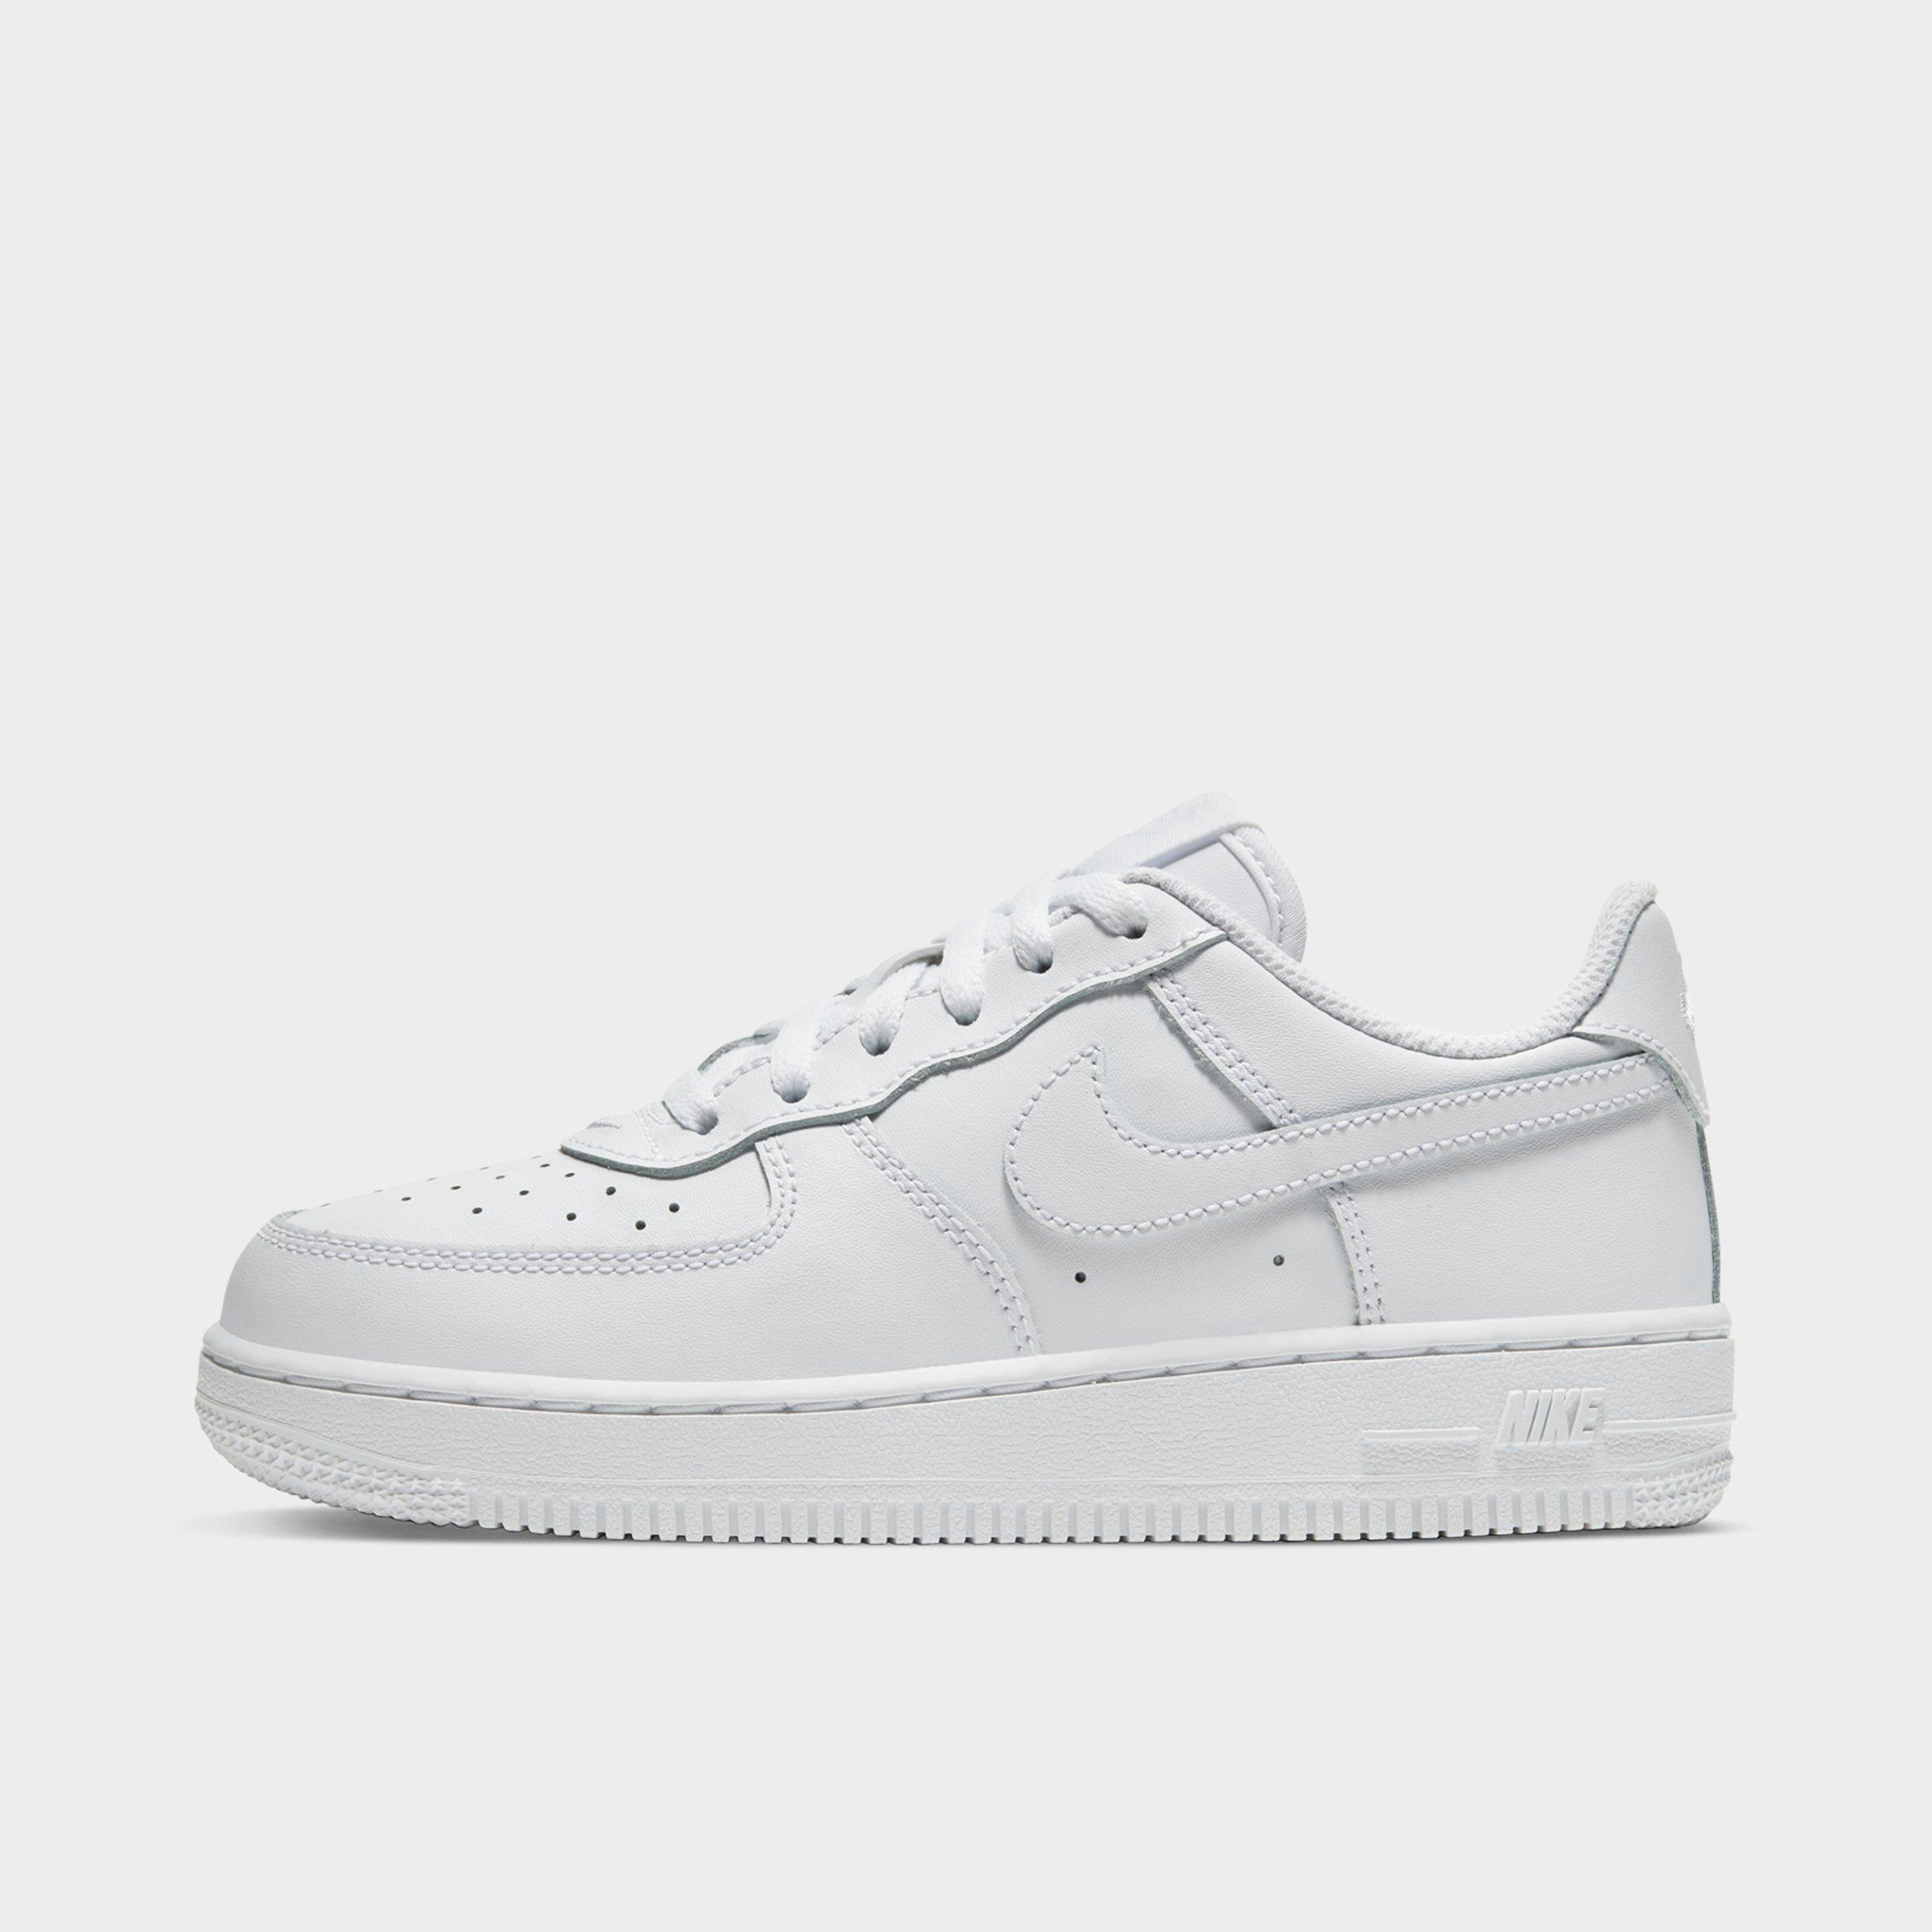 Little Kids' Nike Air Force 1 Low